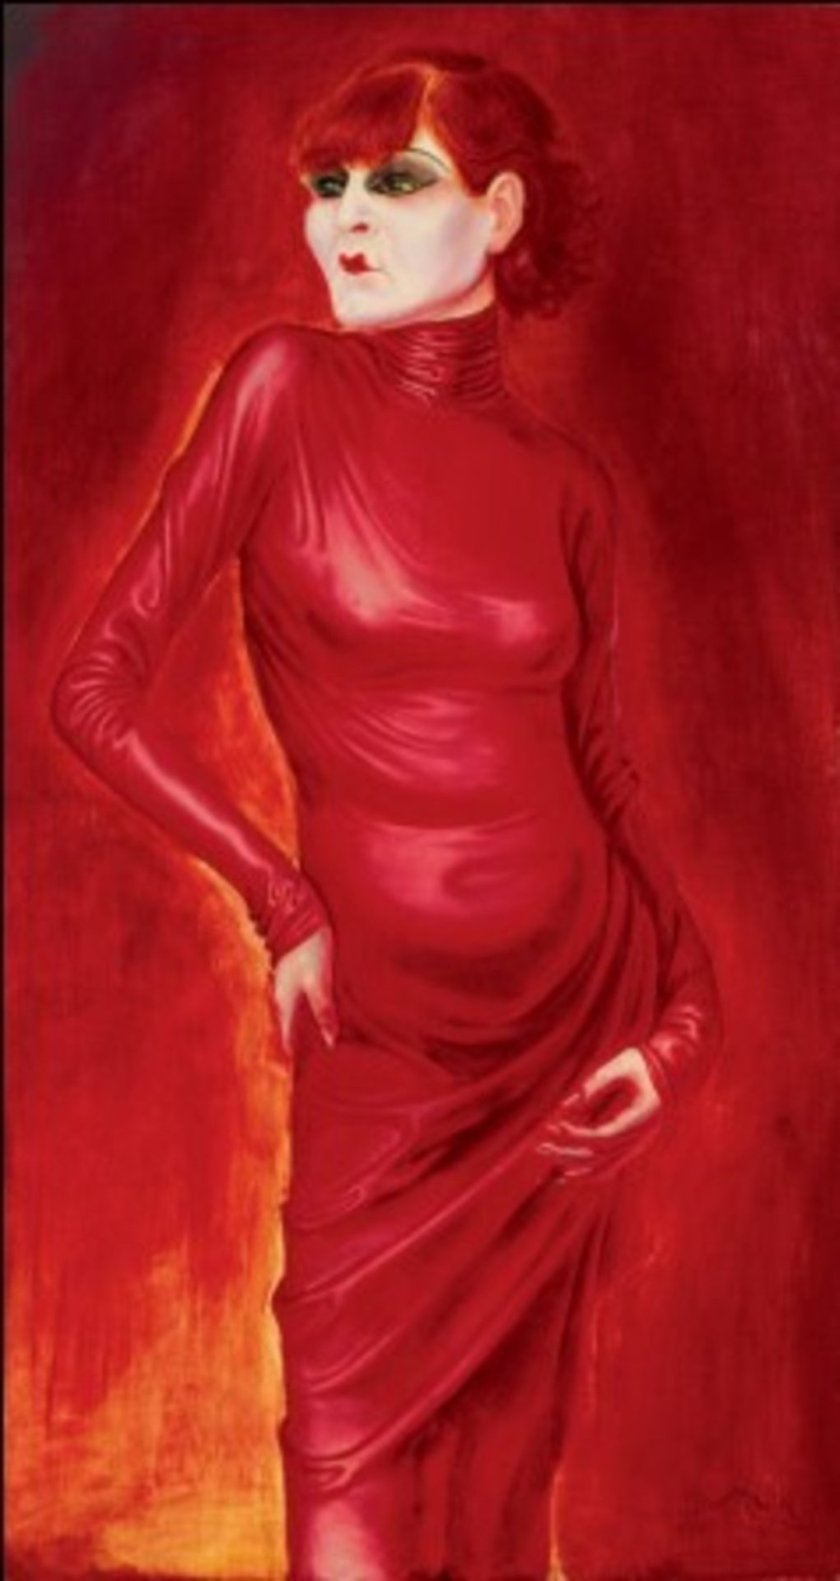 Otto Dix – Portrait of the Dancer Anita Berber